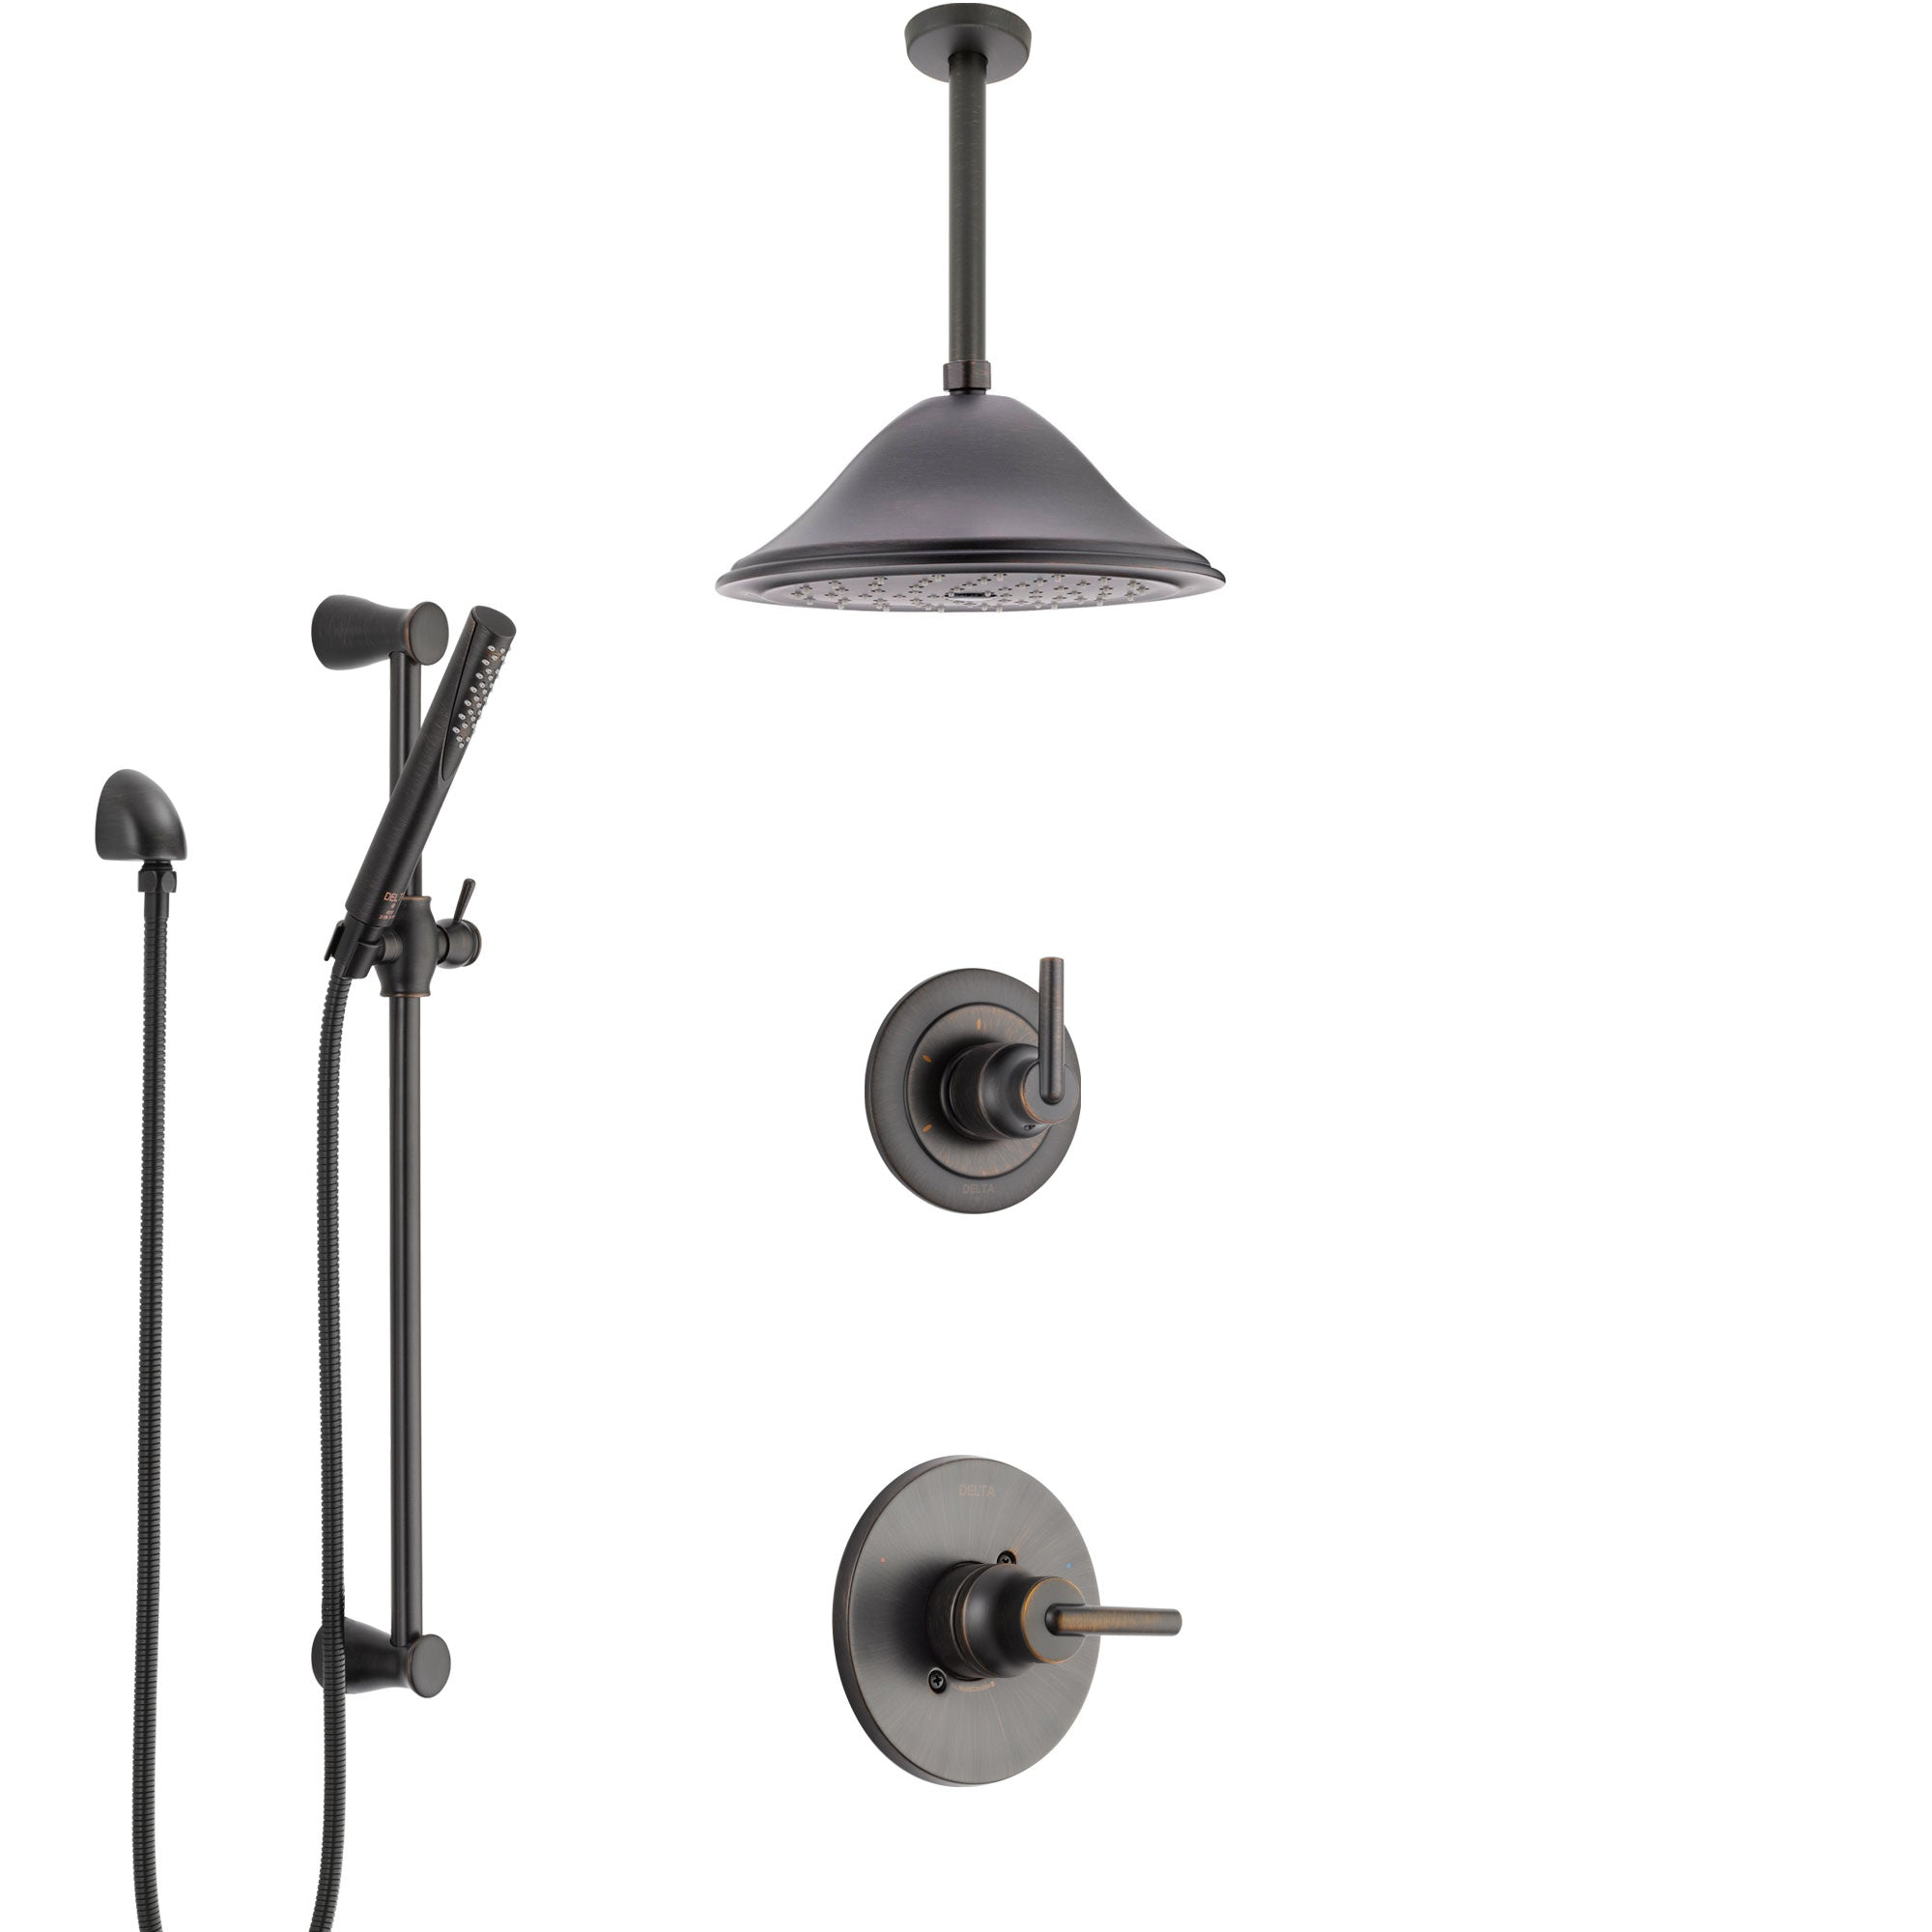 Delta Trinsic Venetian Bronze Shower System with Control Handle, 3-Setting Diverter, Ceiling Mount Showerhead, and Hand Shower with Slidebar SS1459RB7